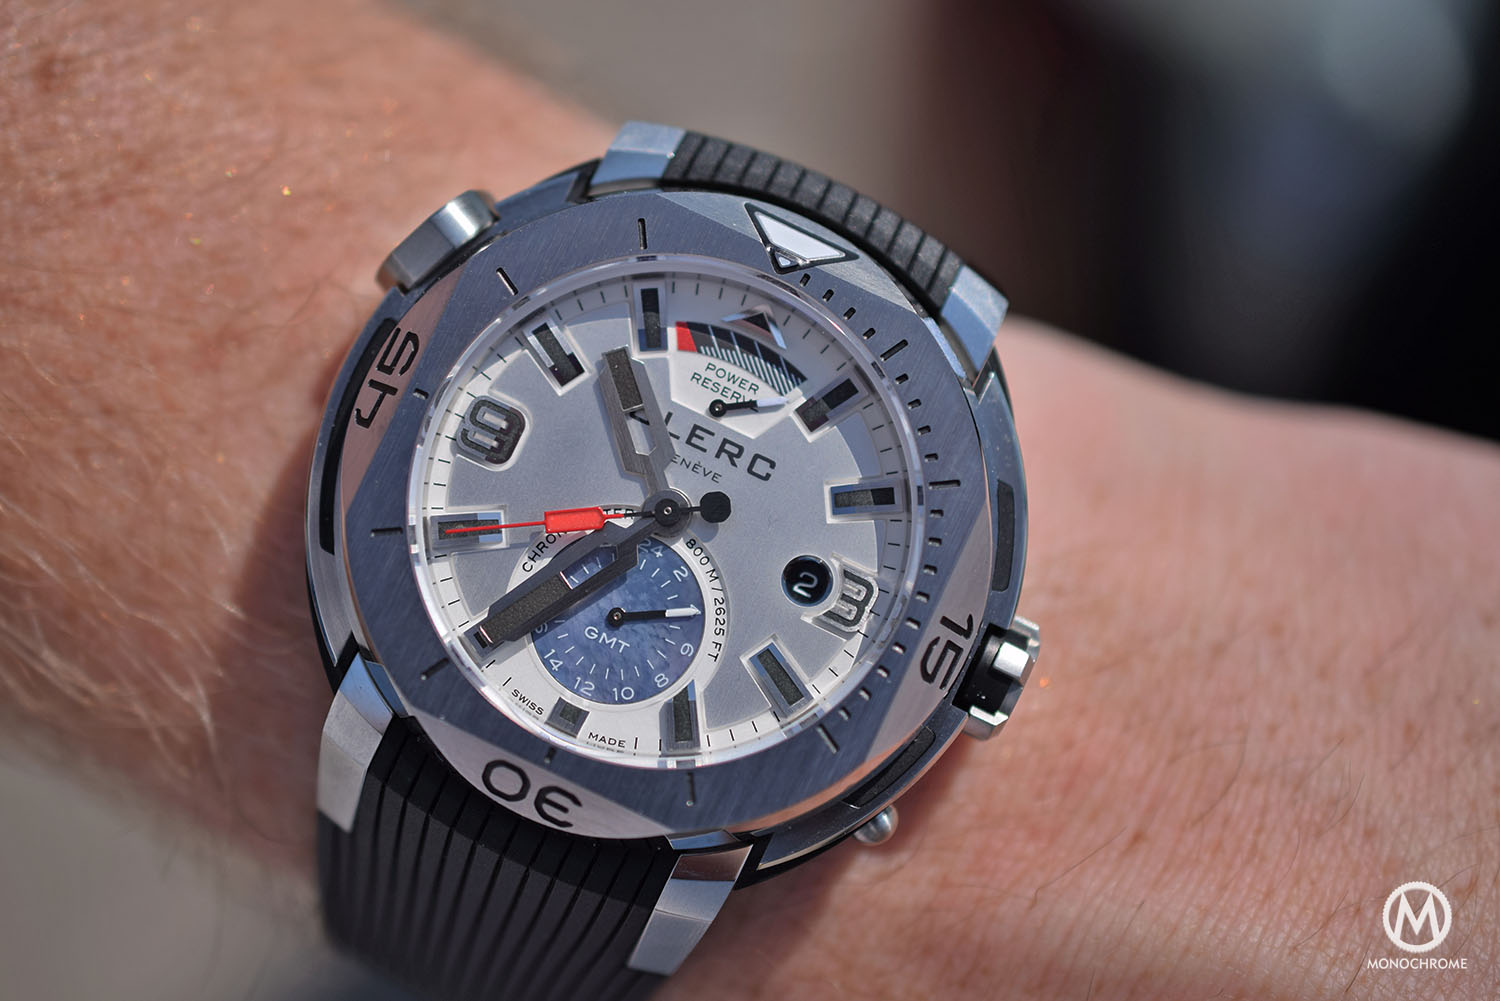 Clerc dive watch Dial and hands